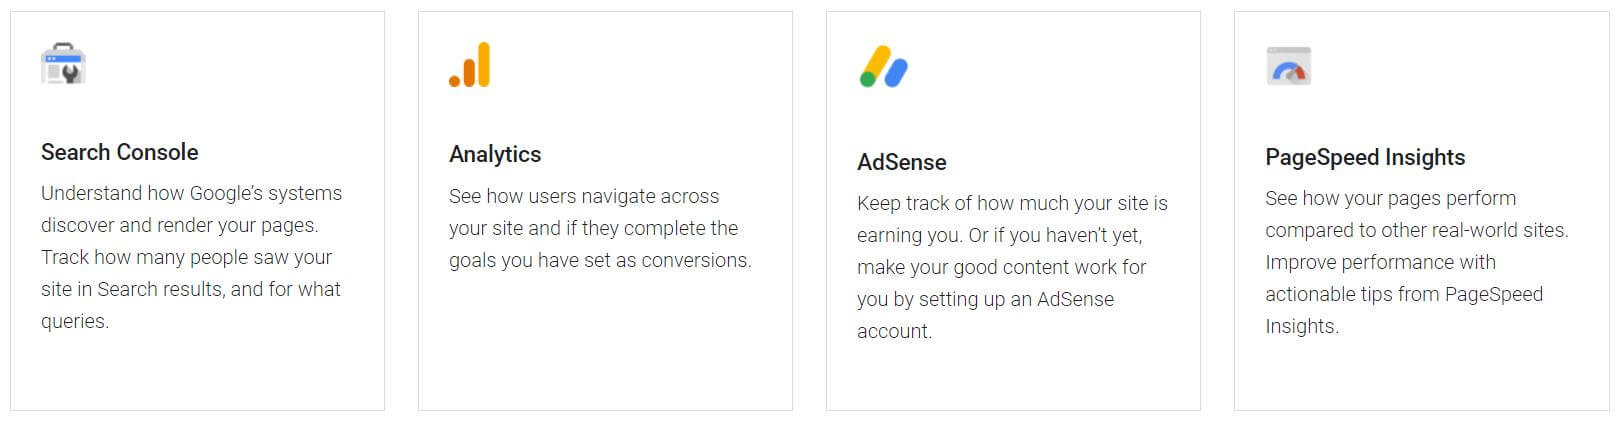 Google Analytics, Search Console, AdSense und PageSpeed Insights